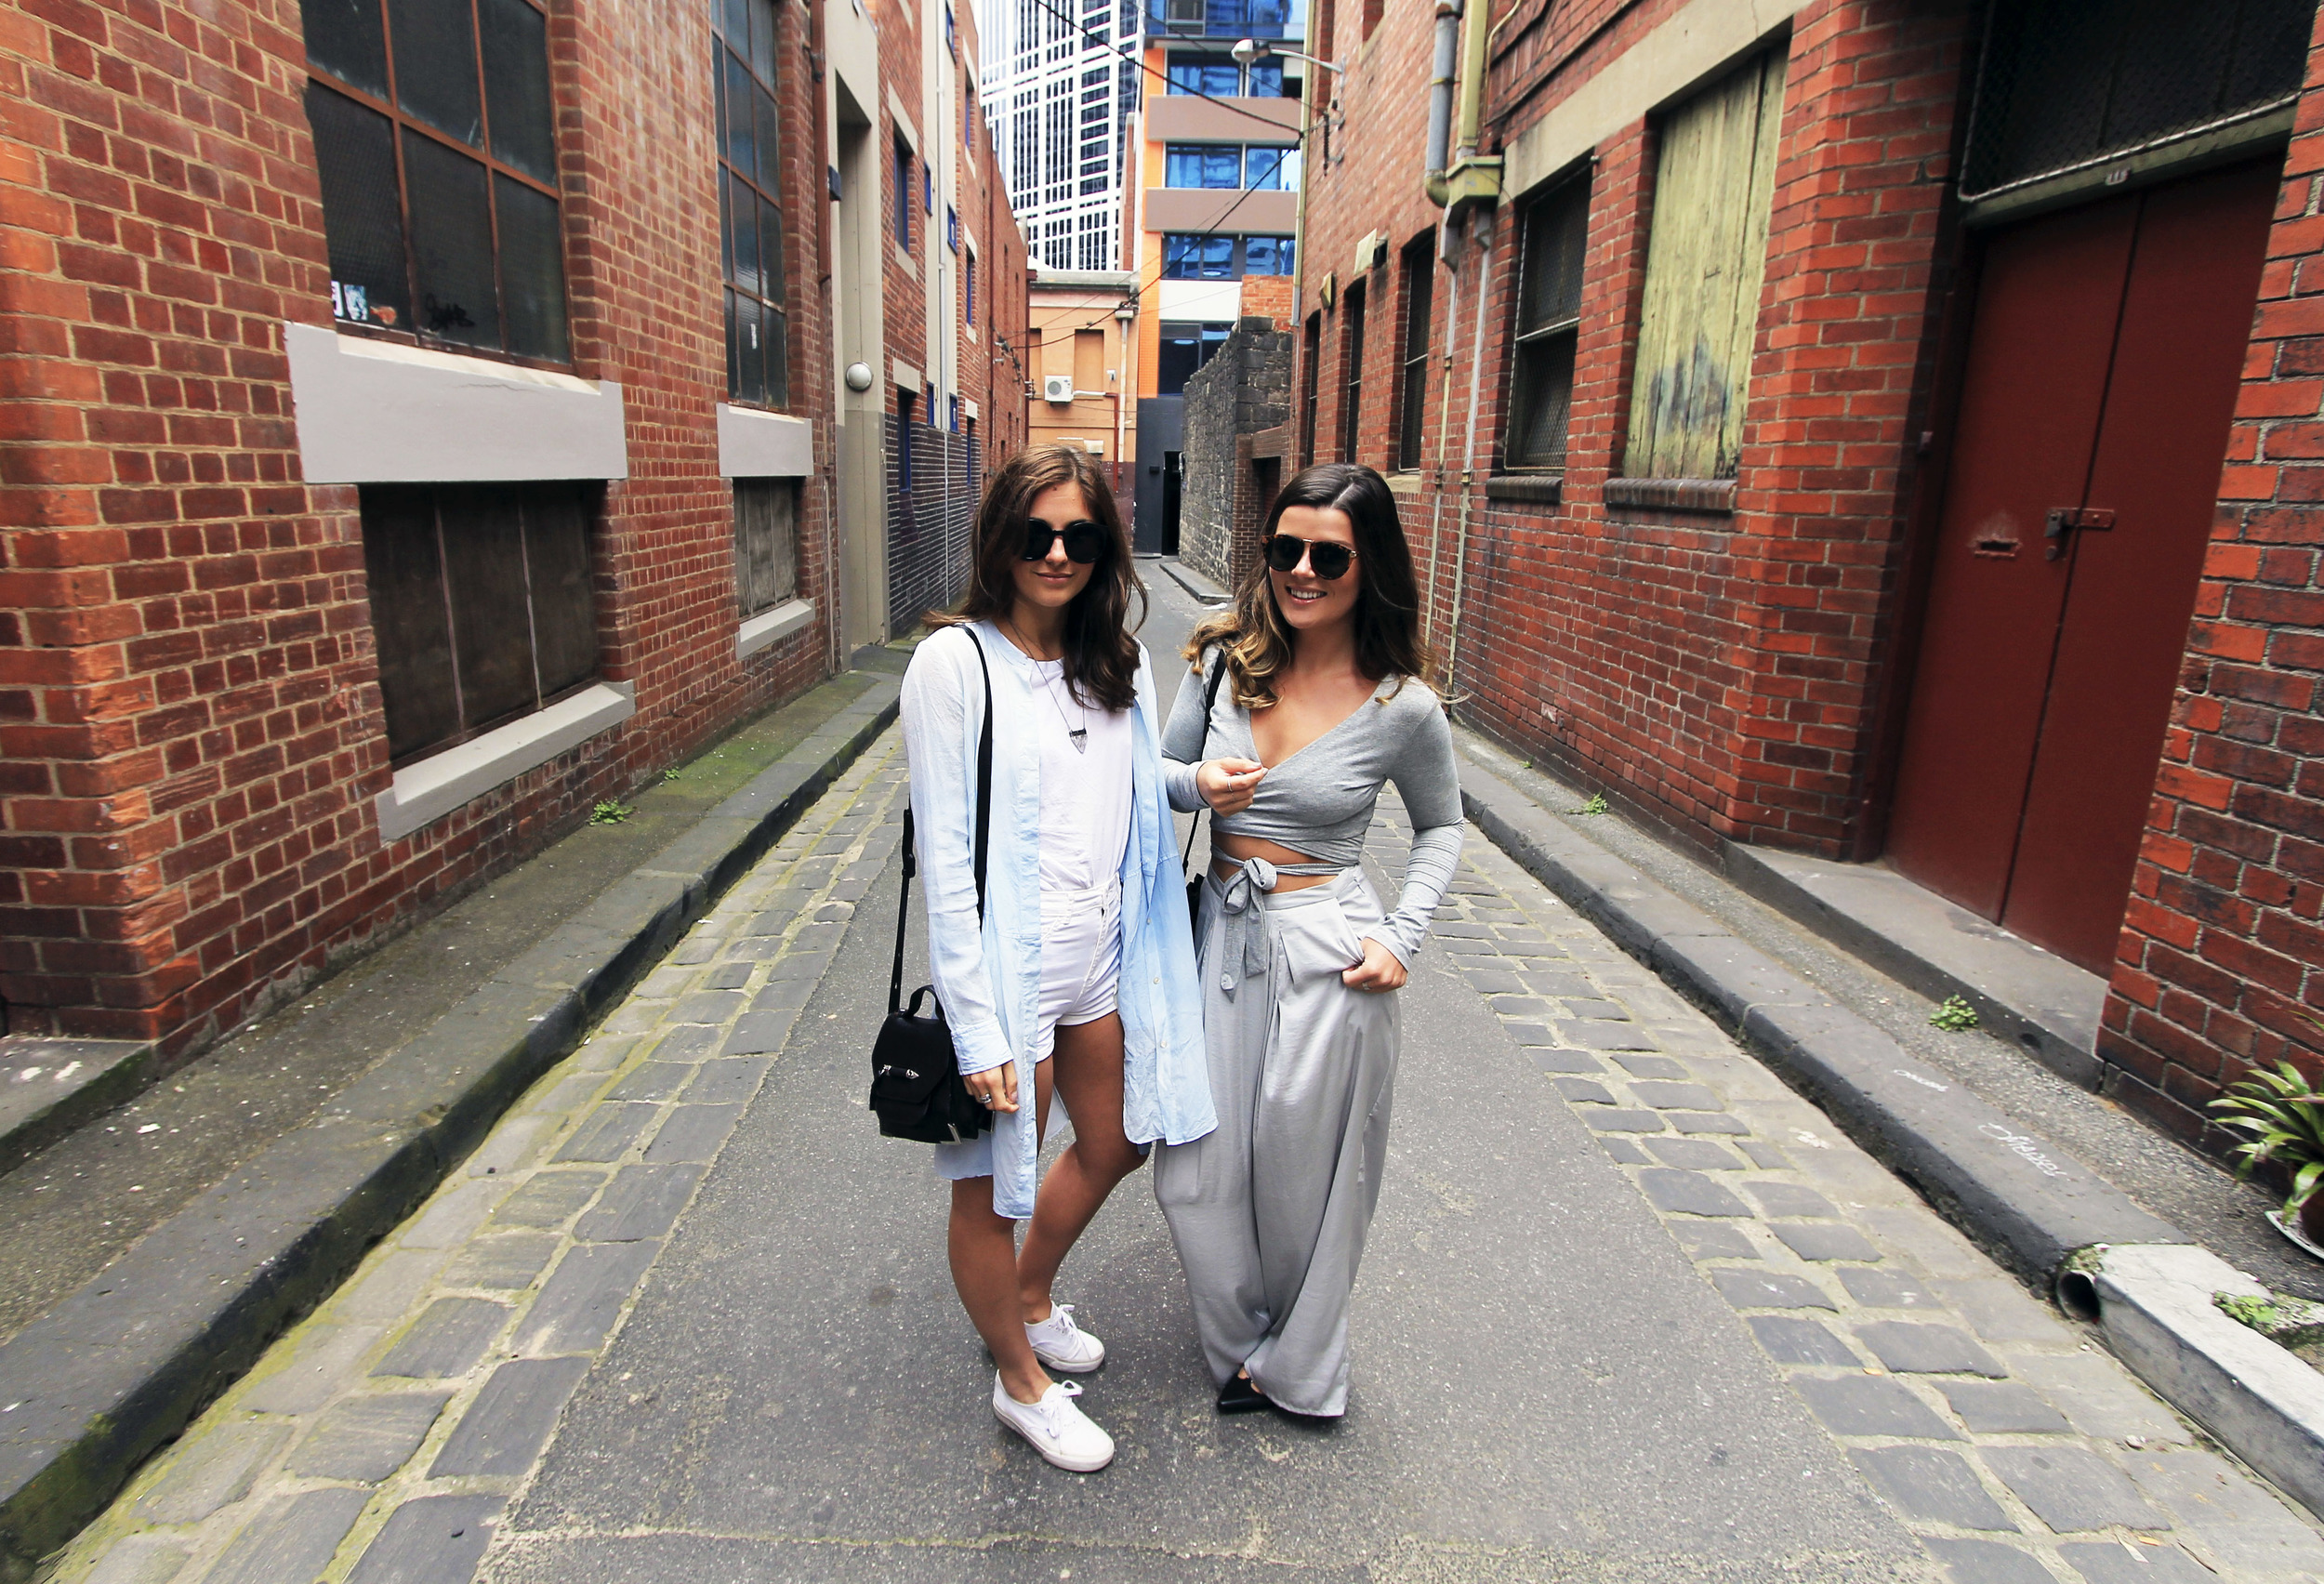 canadian-australian-fashion-style-bloggers-street-outfits-melbourne.jpg